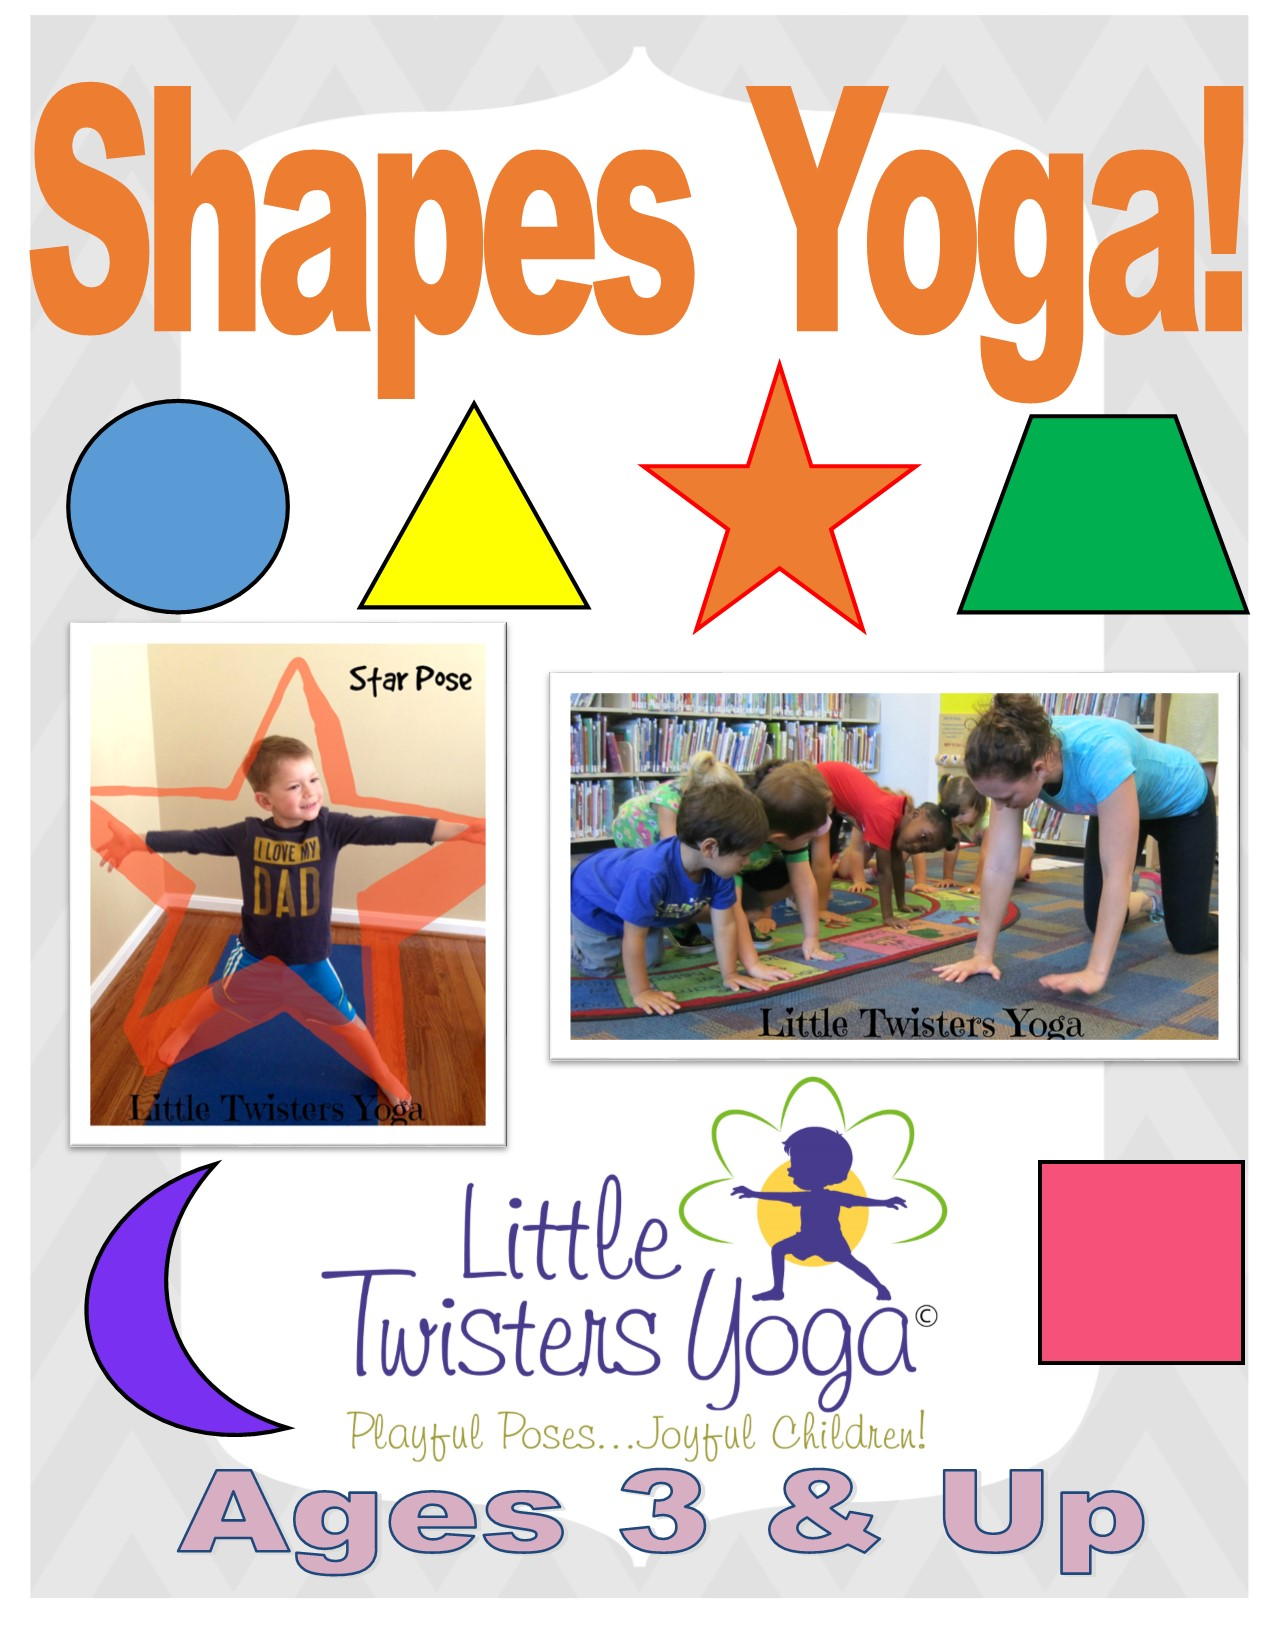 photograph relating to Kids Yoga Poses Printable referred to as Efficient Ideas upon Adding Yoga toward Children! Small Twisters